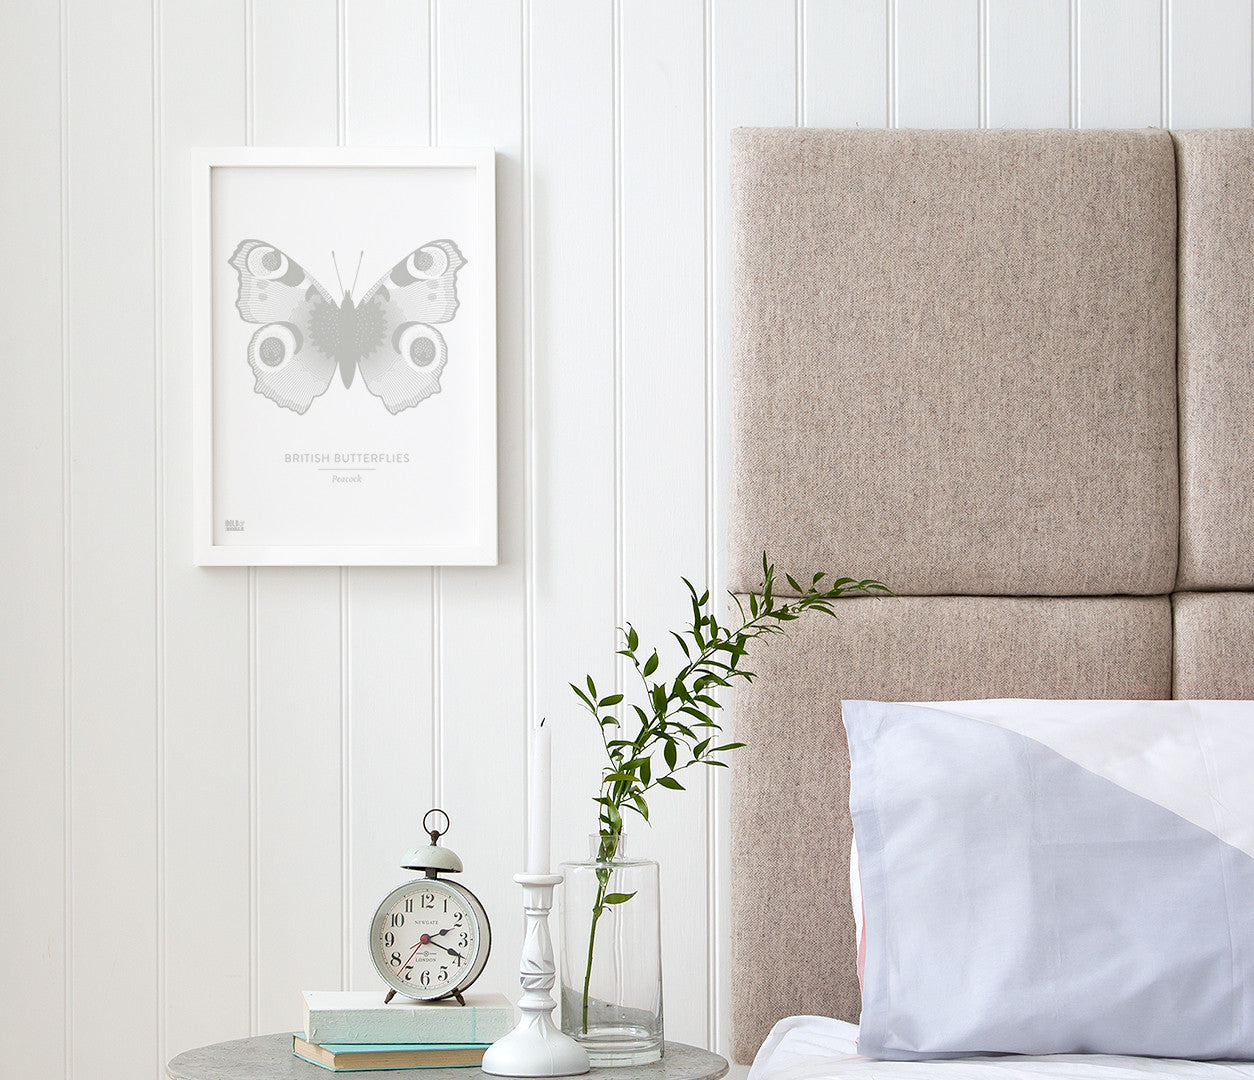 Pictures and Wall Art, Screen Printed Butterflies Wall Art Prints